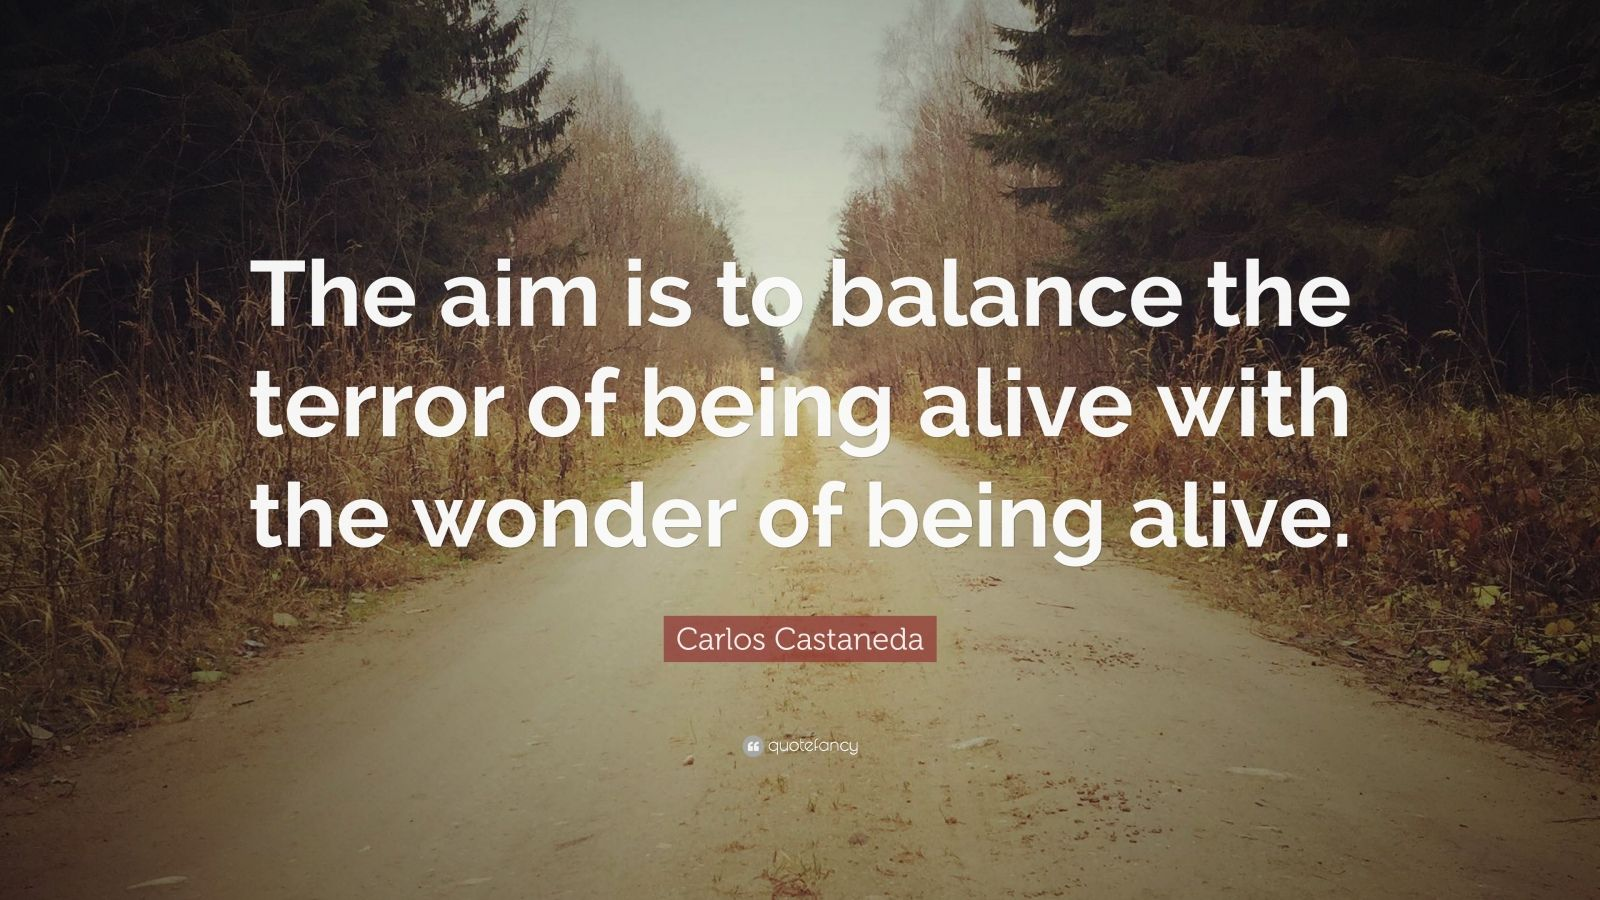 """Carlos Castaneda Quote: """"The aim is to balance the terror of being alive with the wonder of being alive."""""""